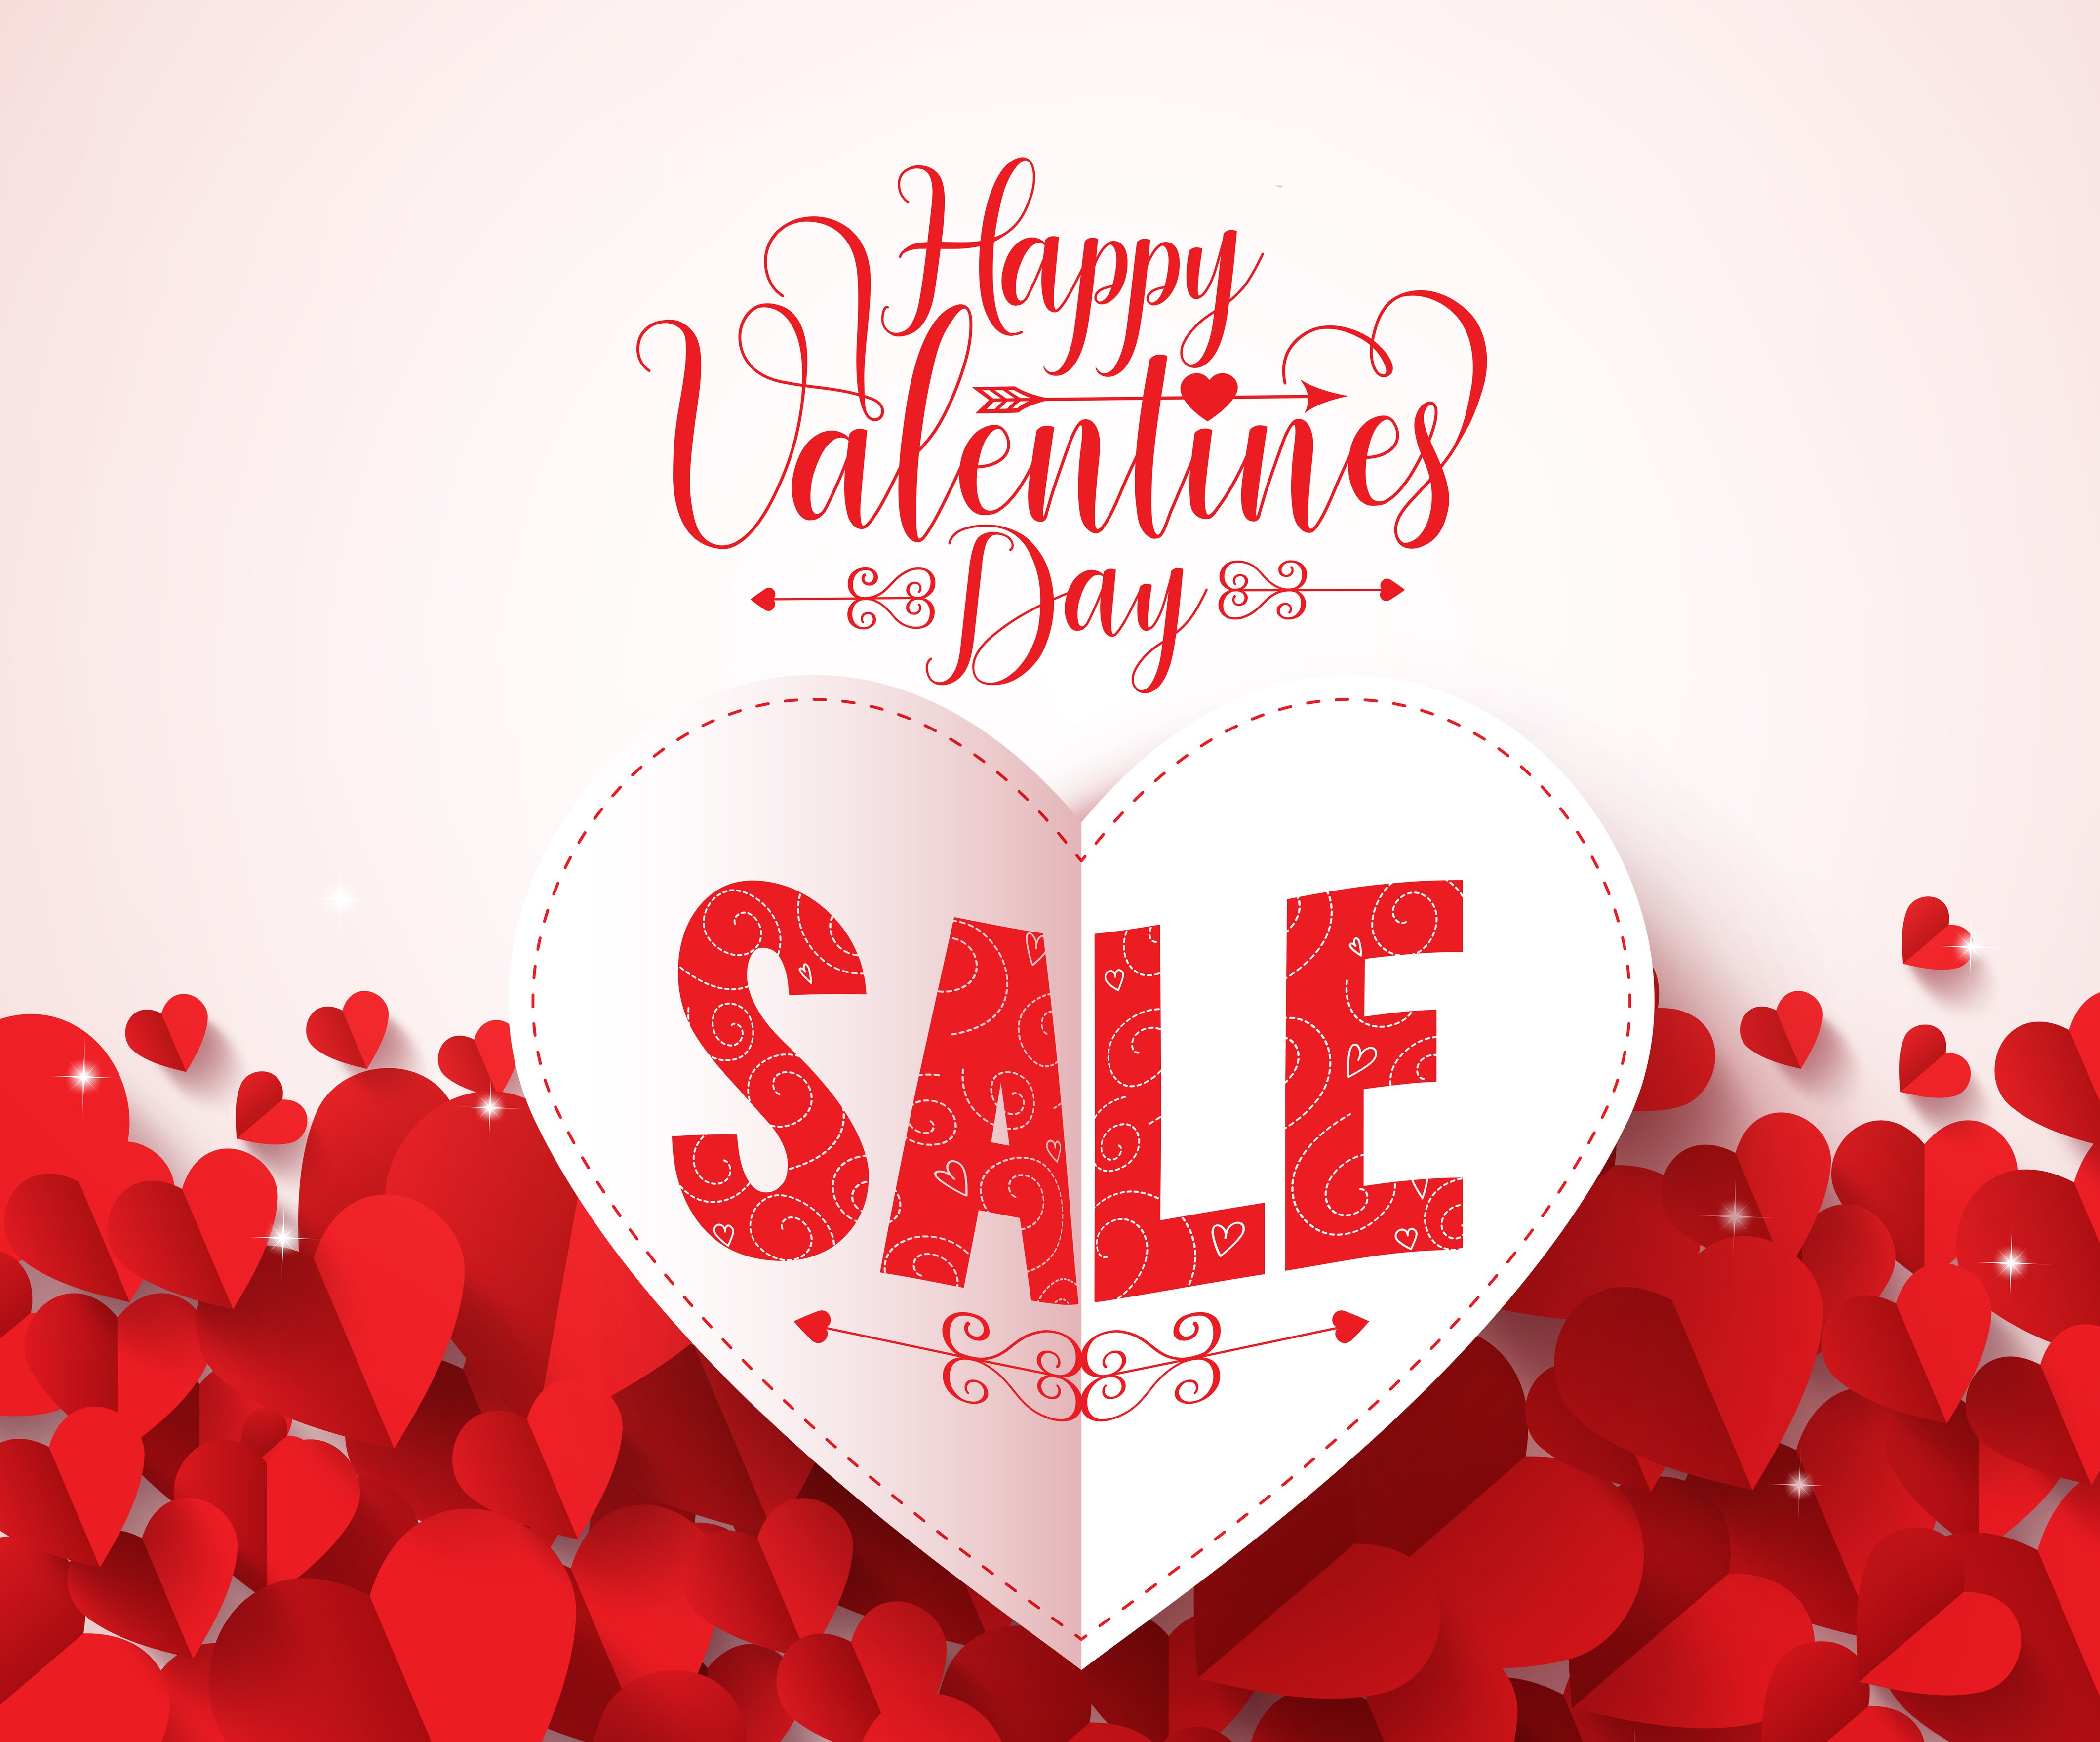 5 Quick Simple Digital Marketing Ideas For Valentine S Day